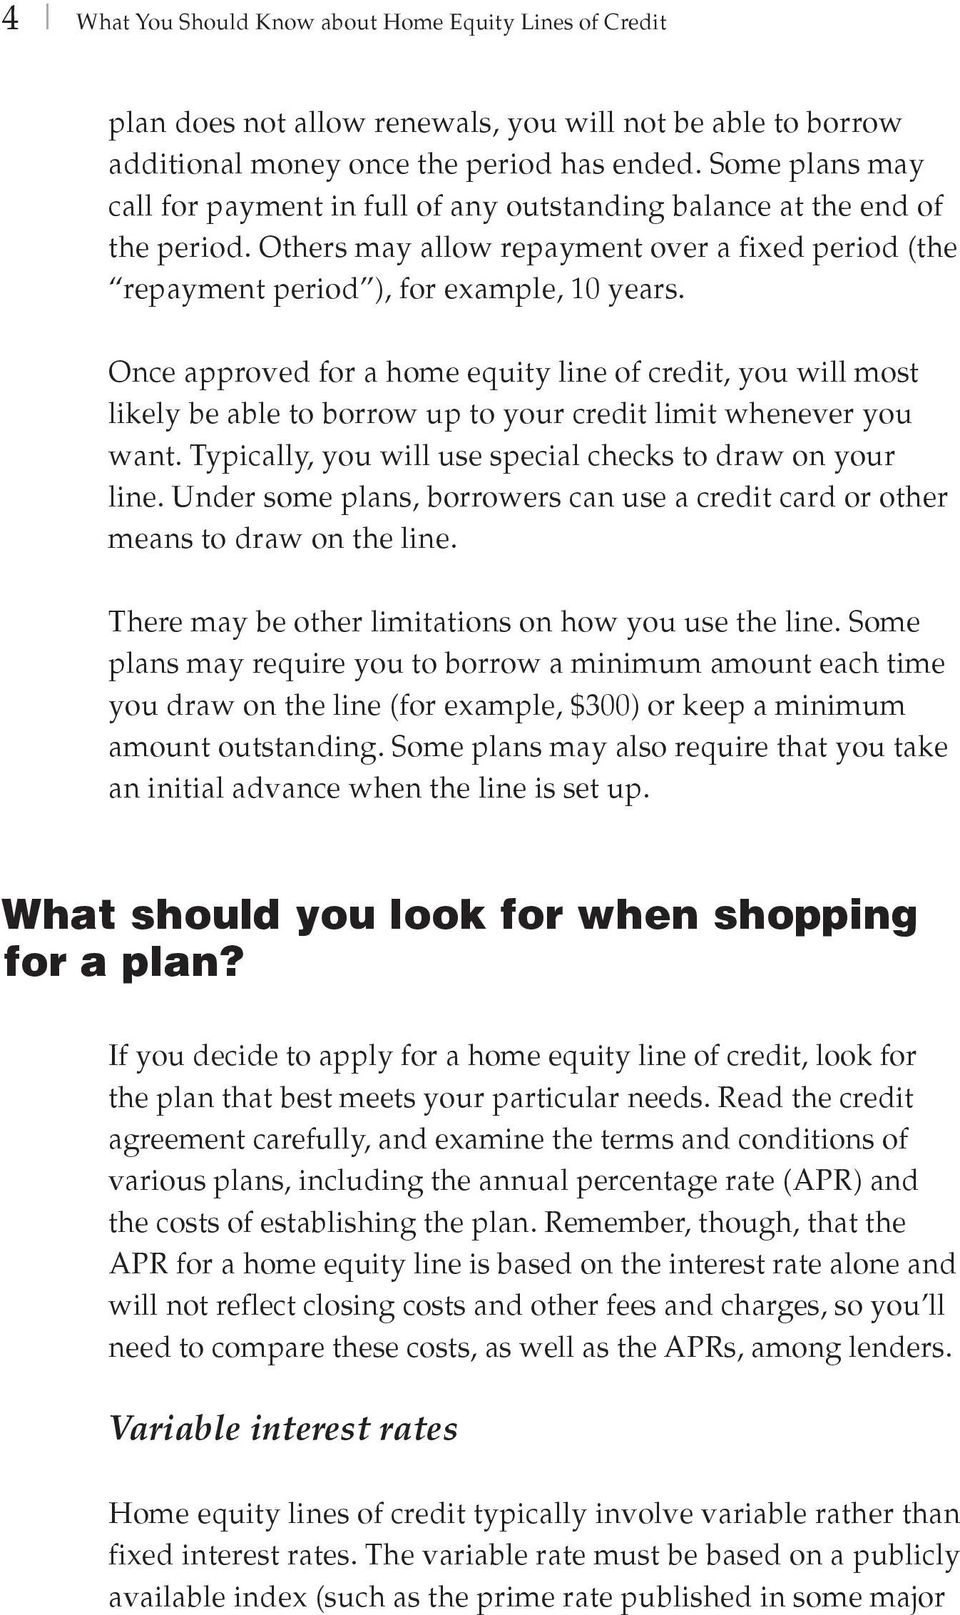 home equity lines of credit - pdf